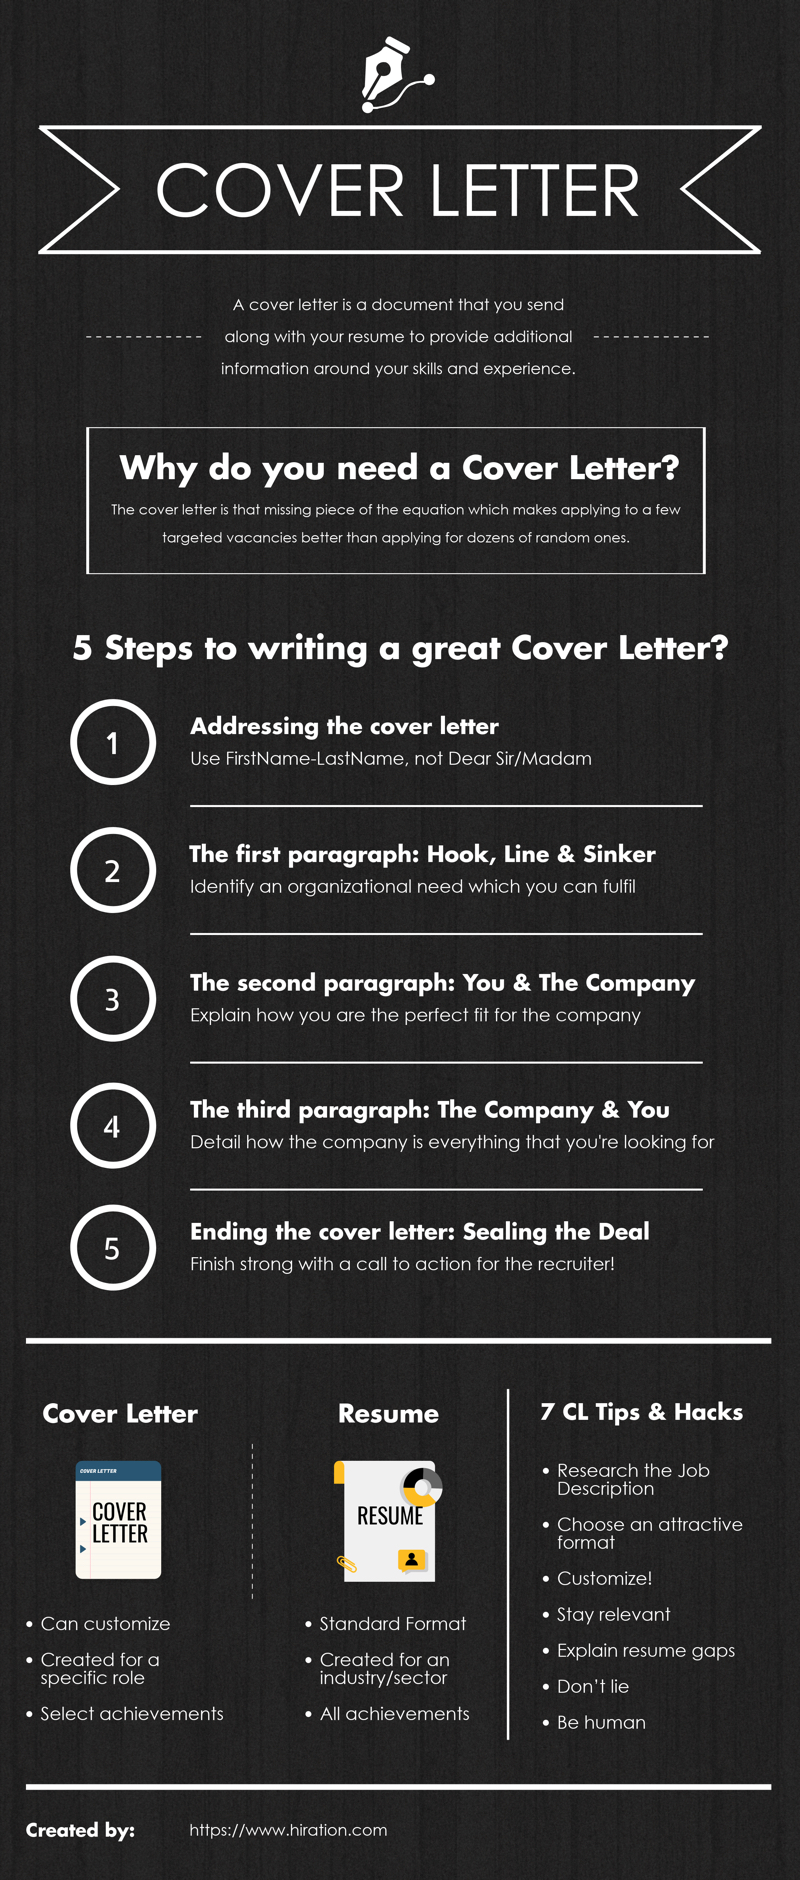 How to write a Cover Letter  2019 Guide with Examples